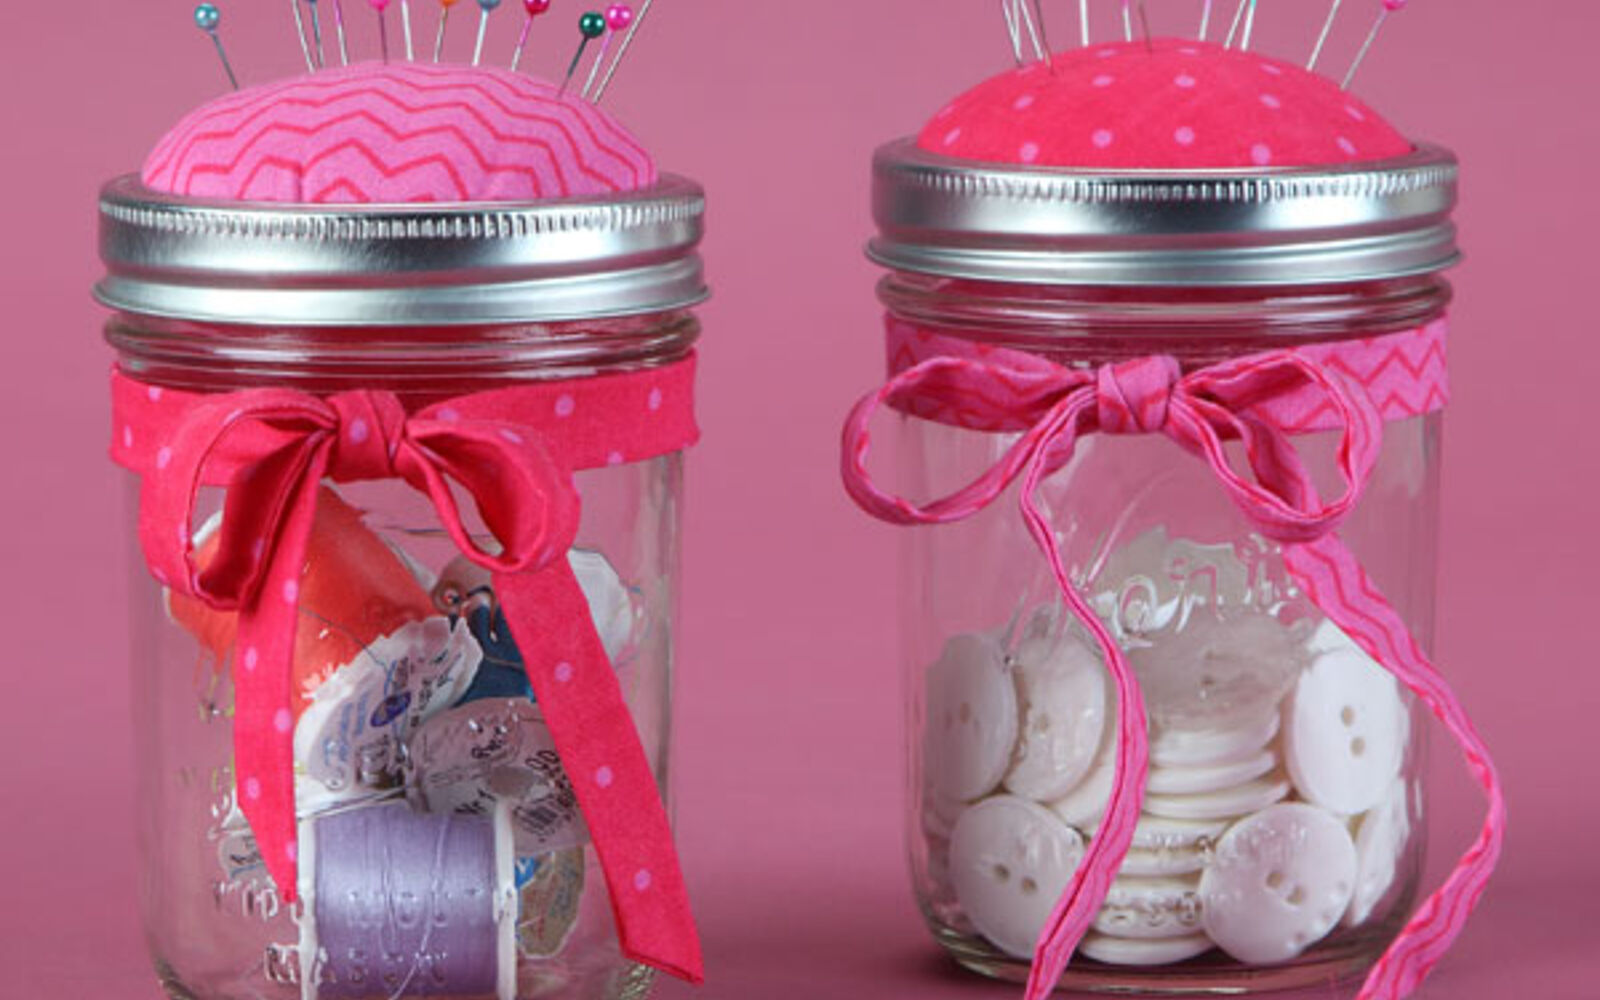 s 30 great mason jar ideas you have to try, Darling Sewing Kit Pin Cushion Lid